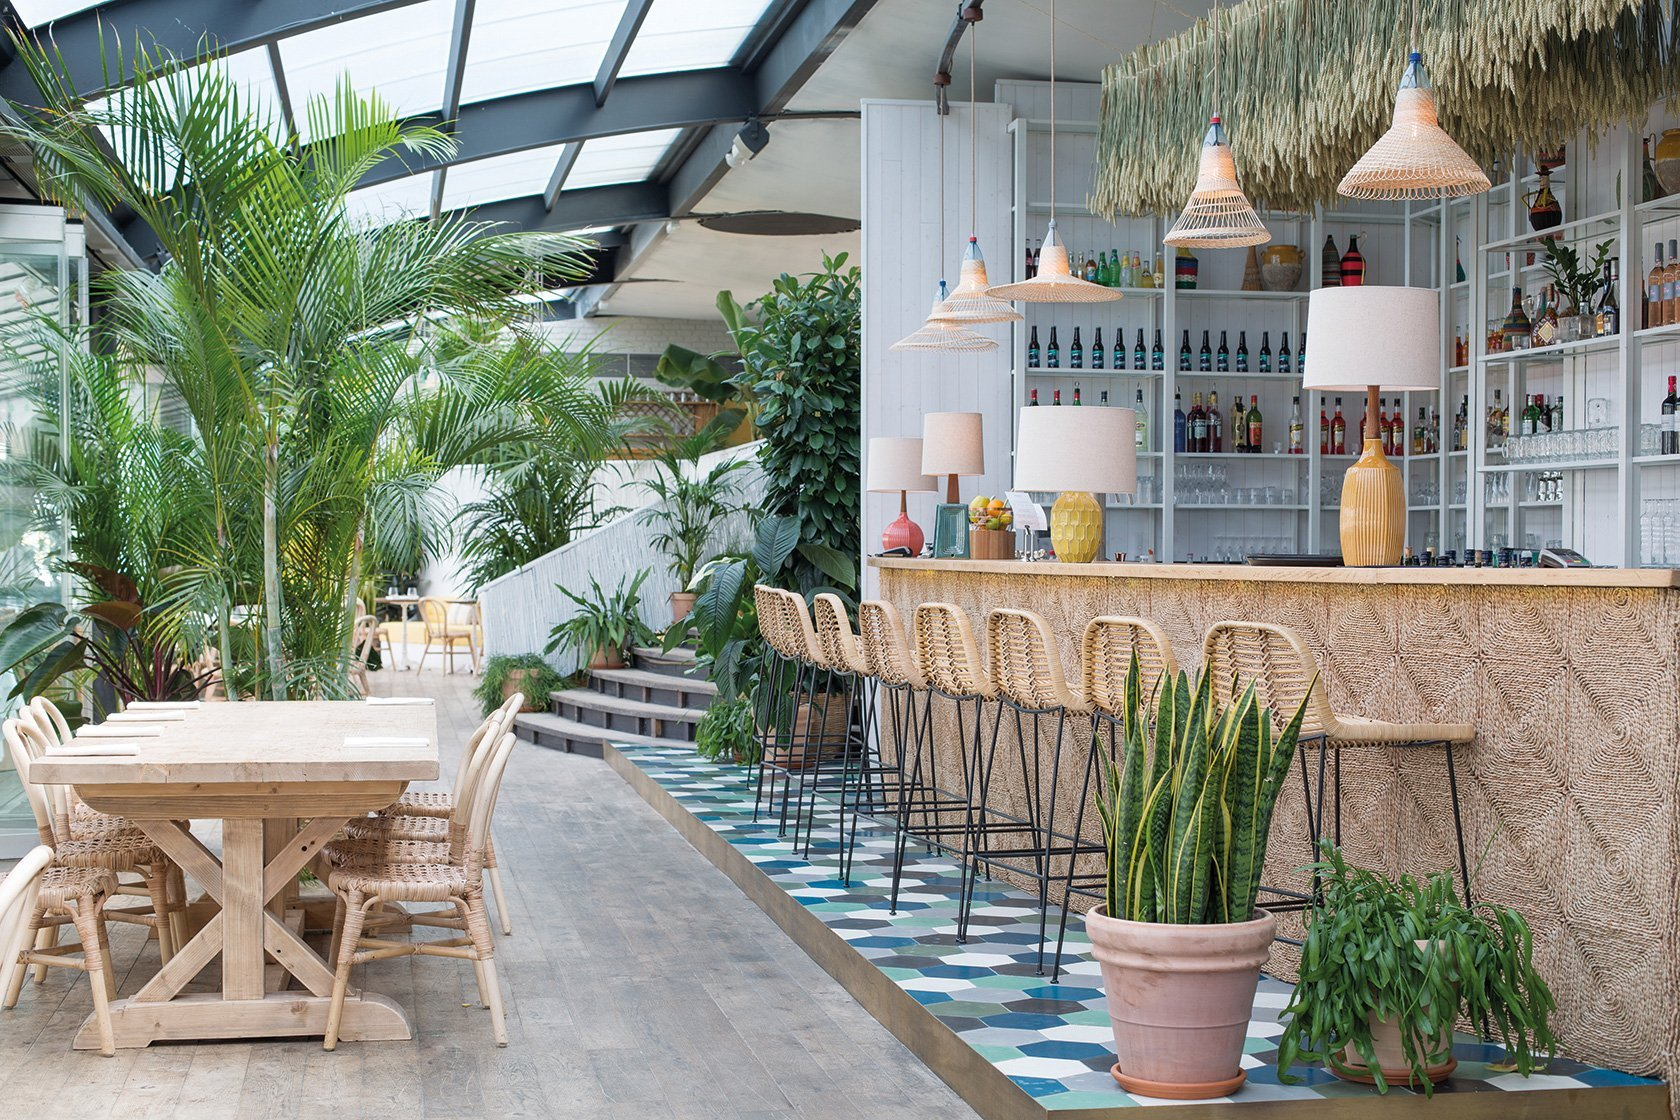 The Best Places to Eat Outside in Paris- Polpo Brasserie